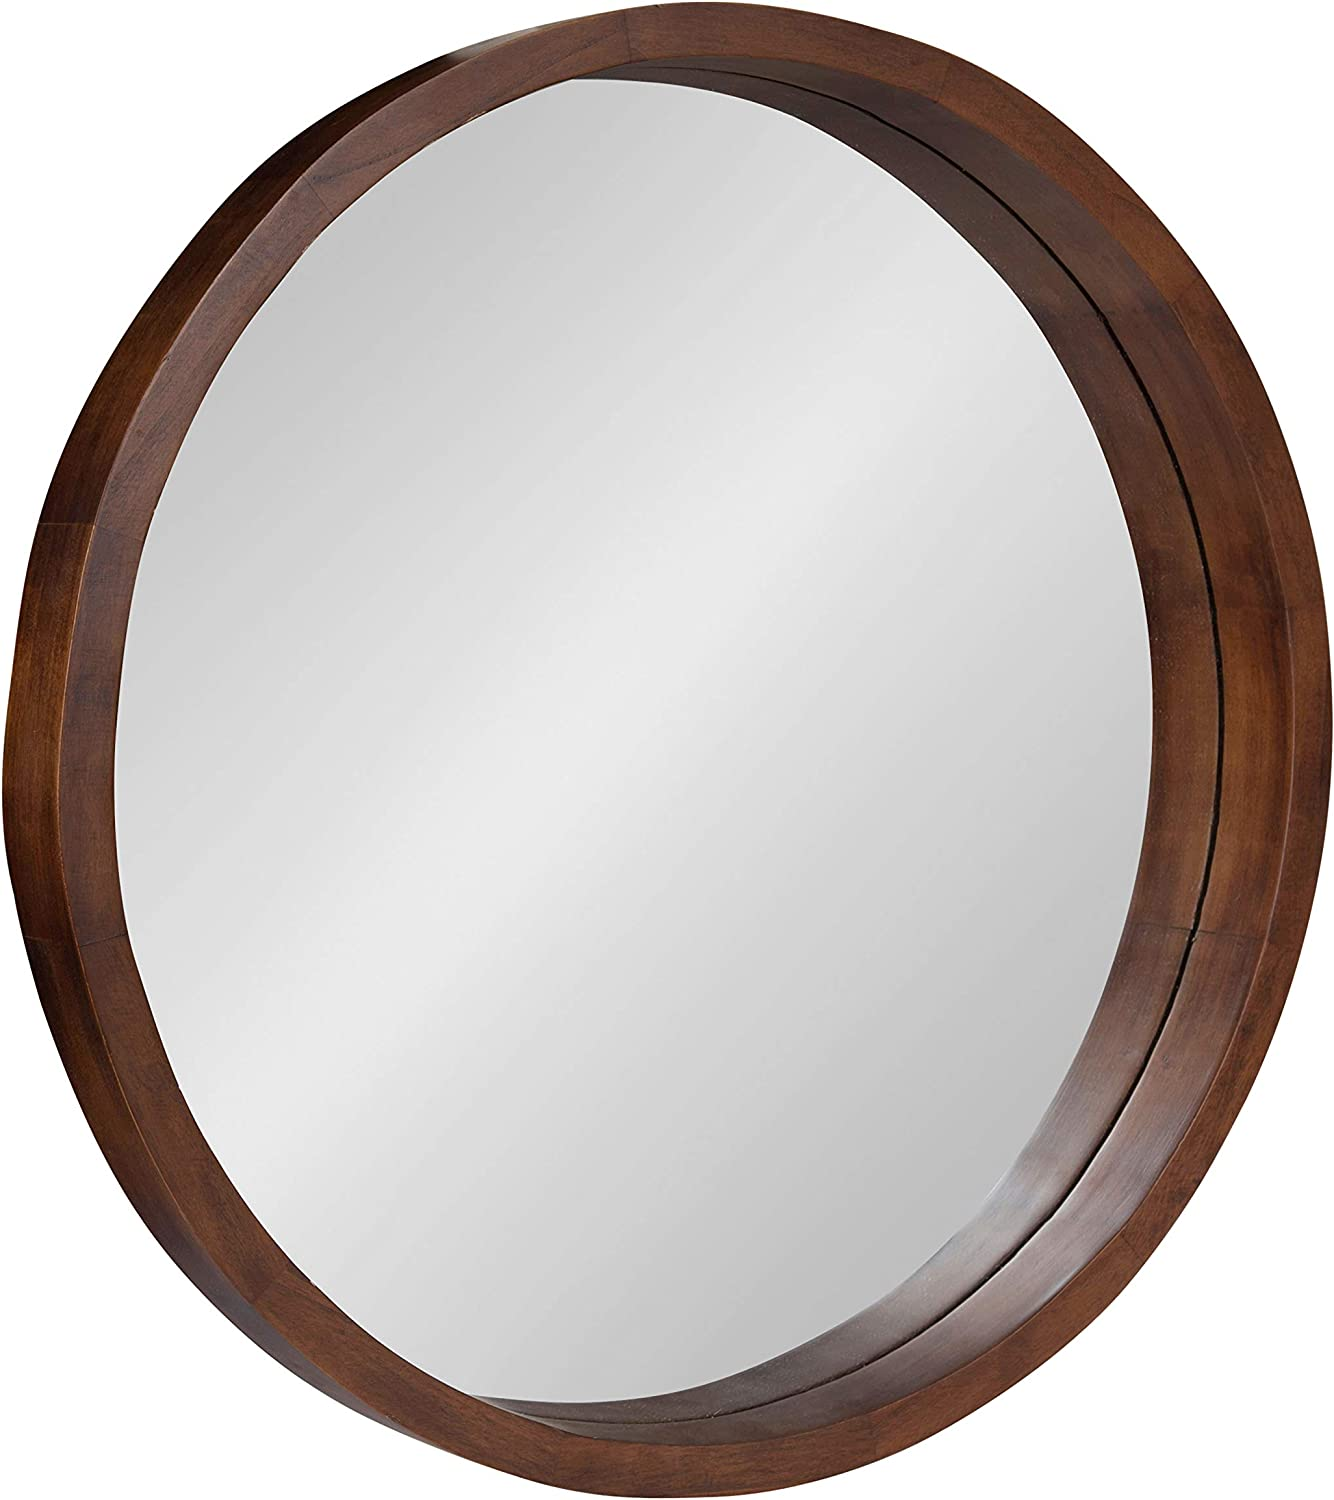 Kate and Laurel Hutton Round Decorative Same day shipping Wall Frame M New York Mall Modern Wood